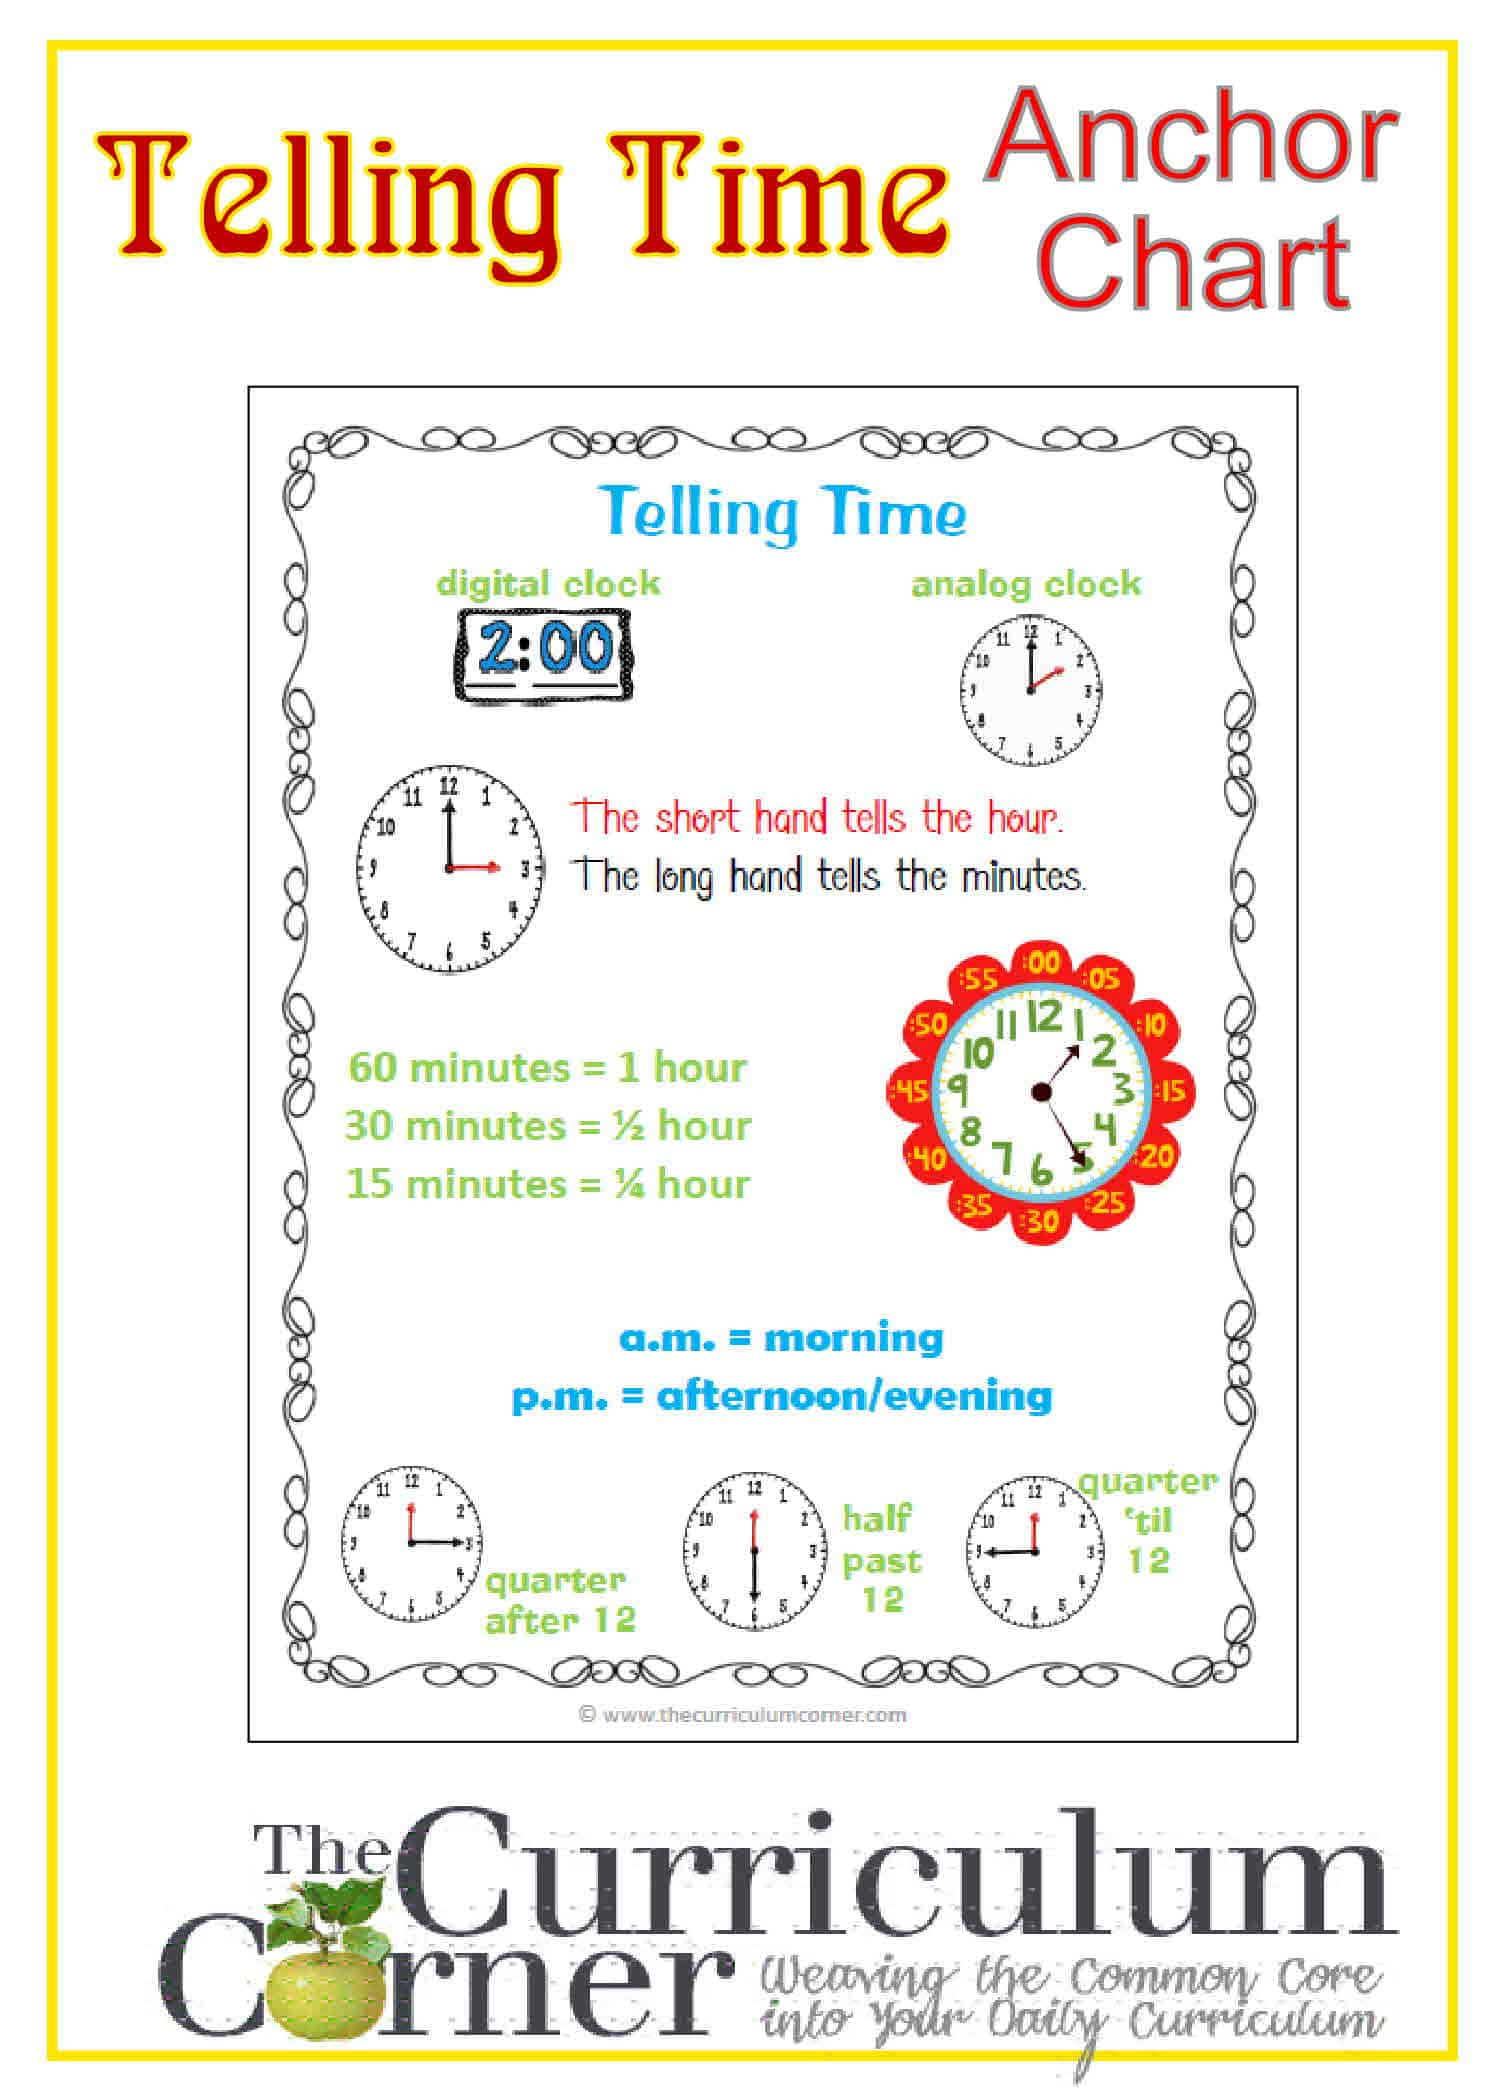 medium resolution of Telling Time Anchor Chart - The Curriculum Corner 123